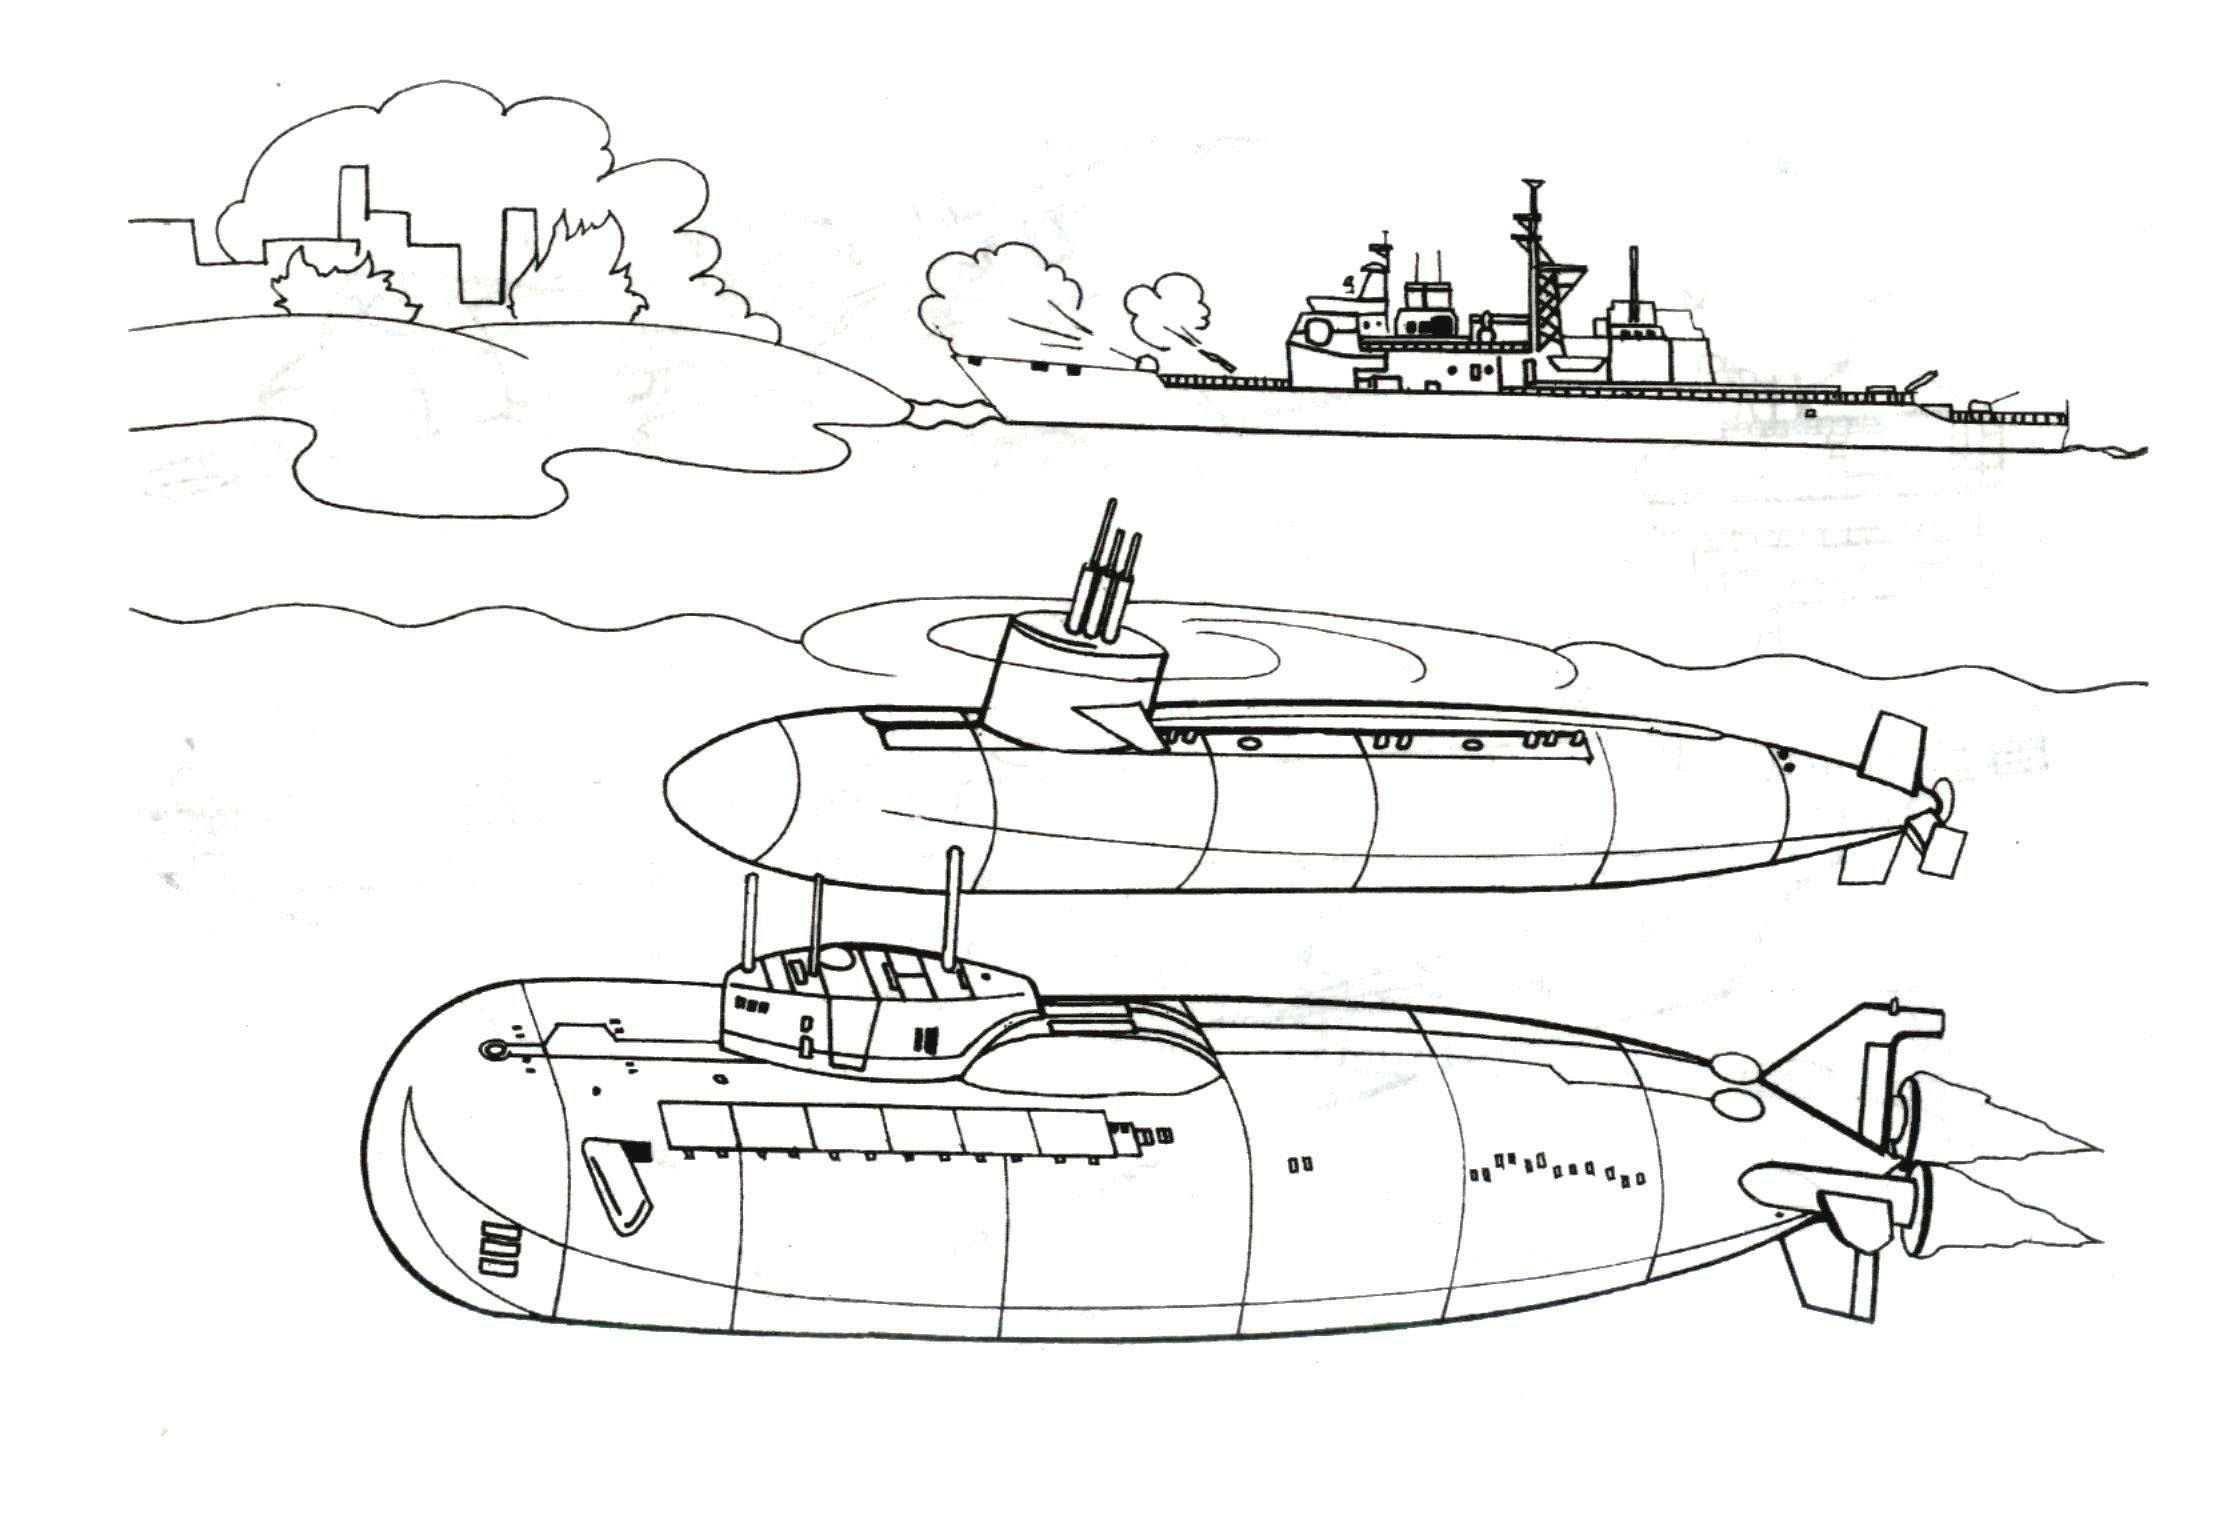 Two big submarines coloring page jpg 2240x1520 pixels coloring